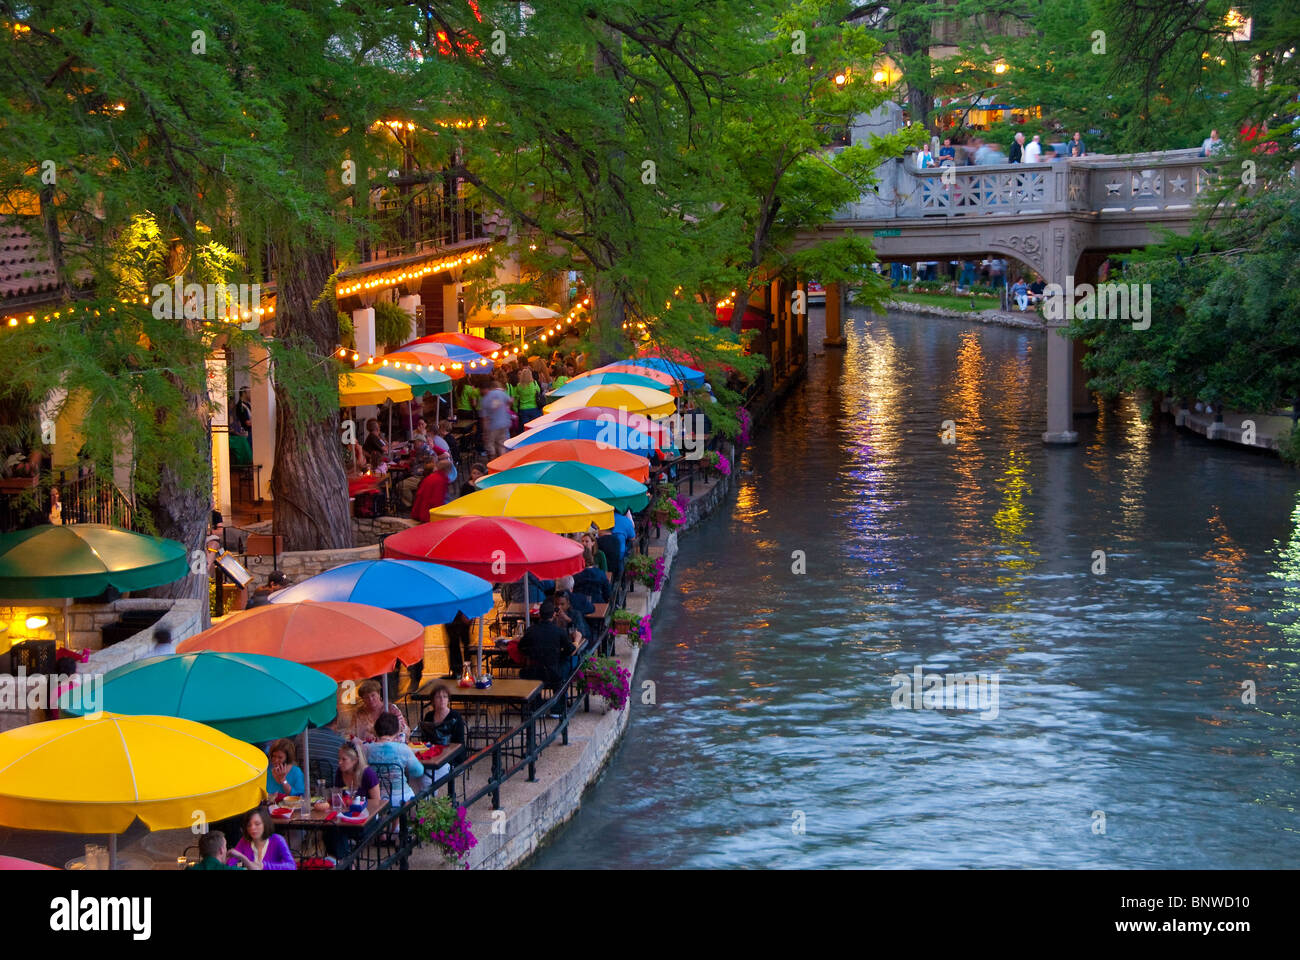 Outdoor dining furniture center and casual shop waco texas for Dining near at t center san antonio